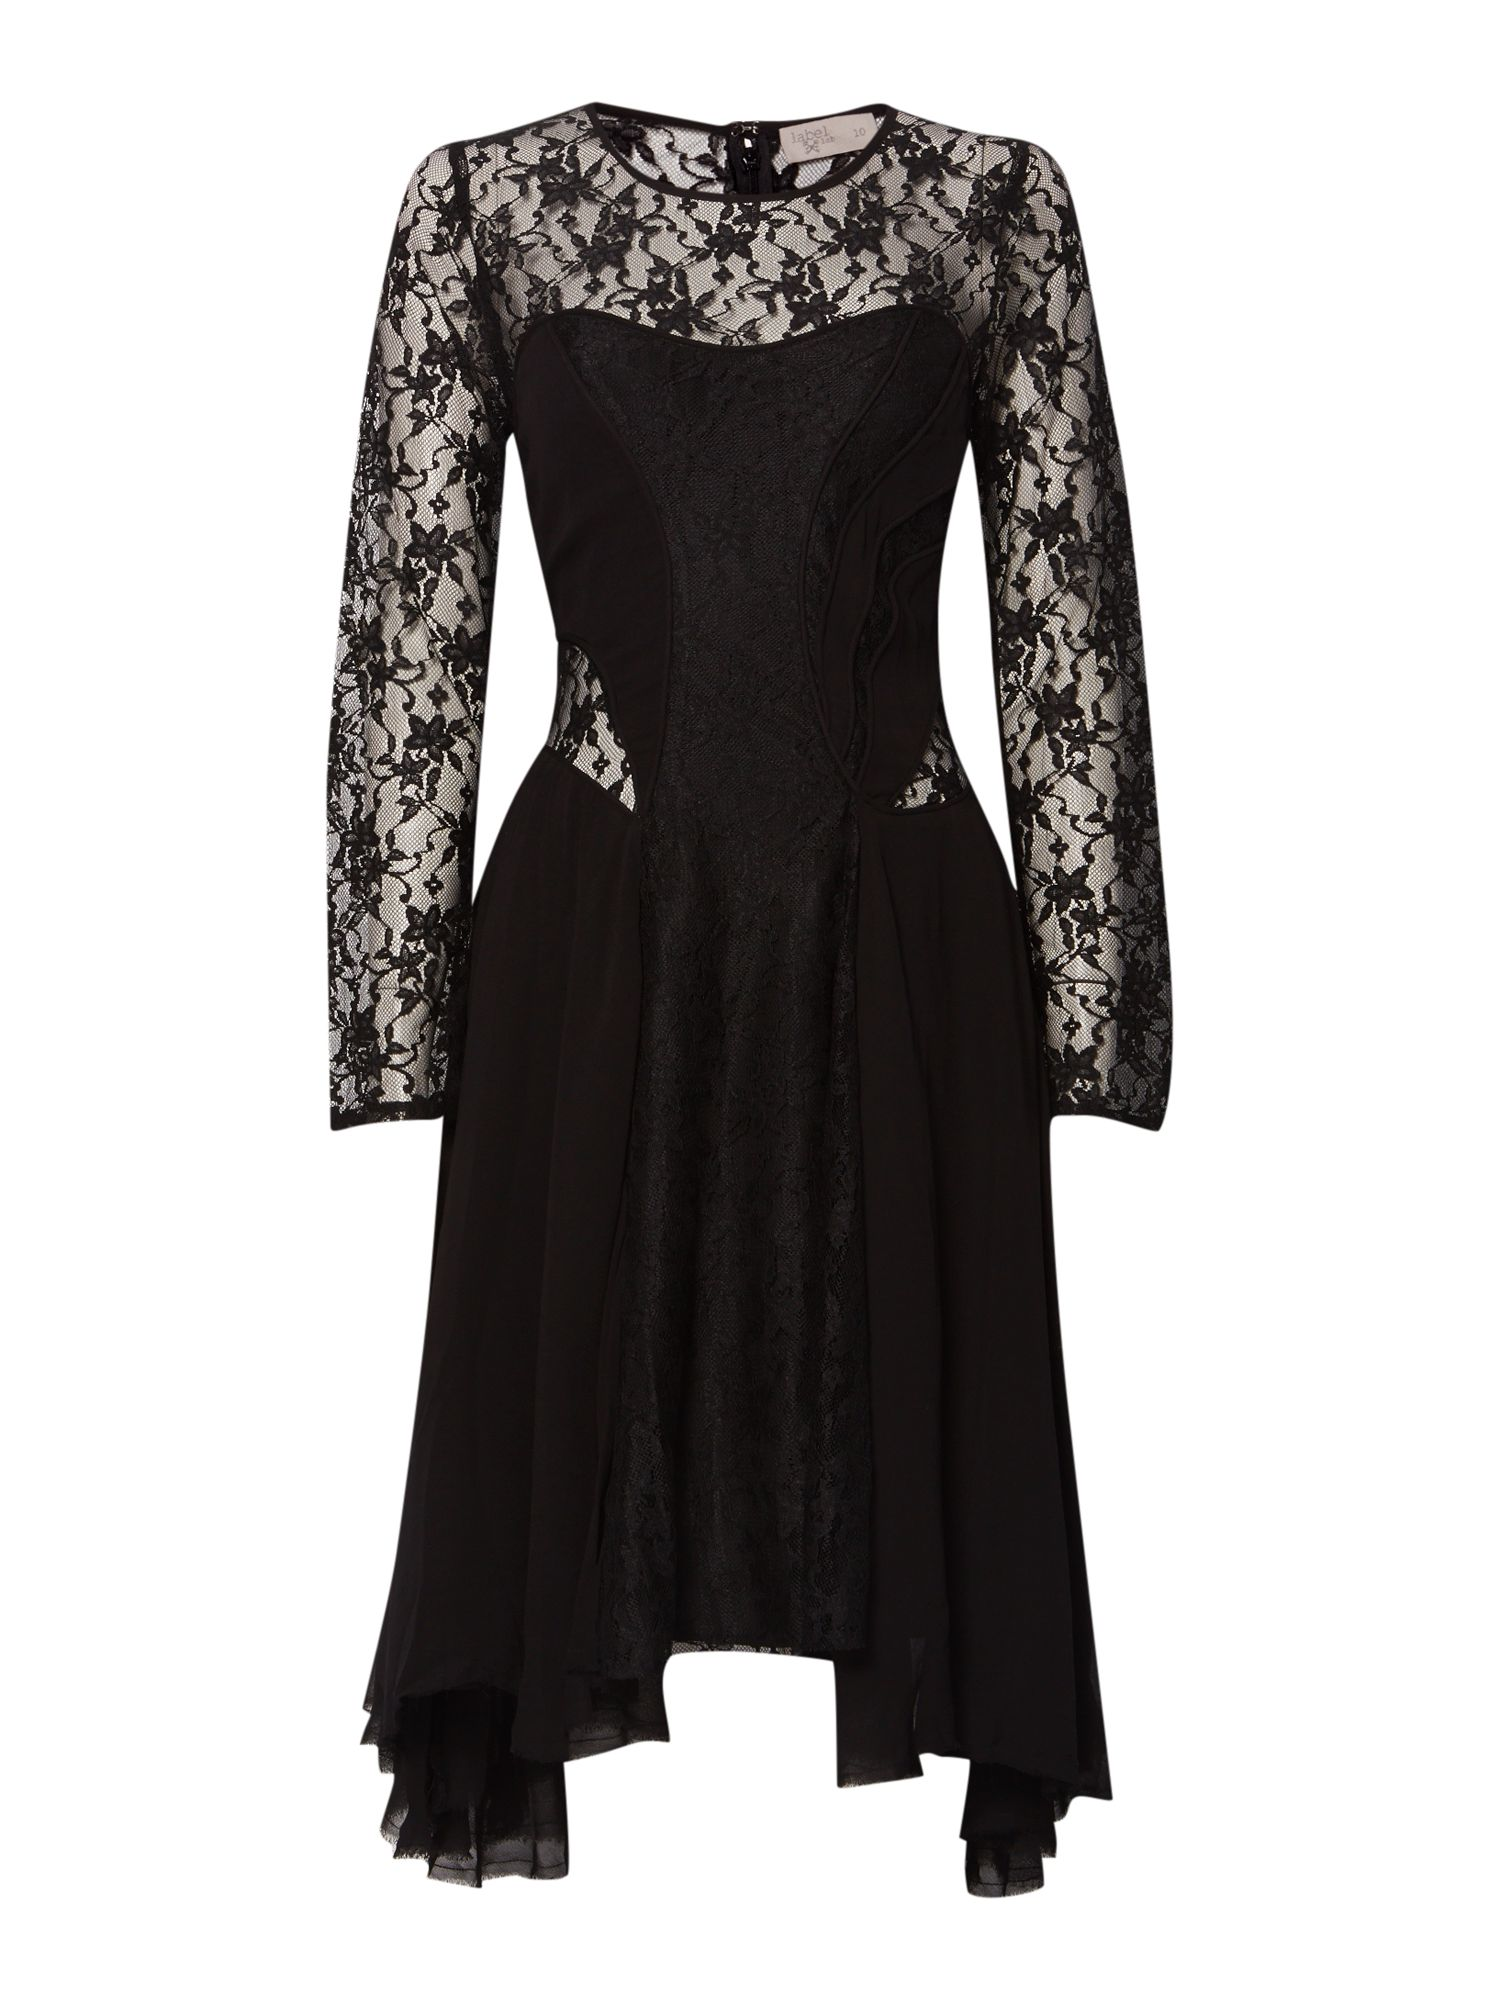 Lace panelled swing dress